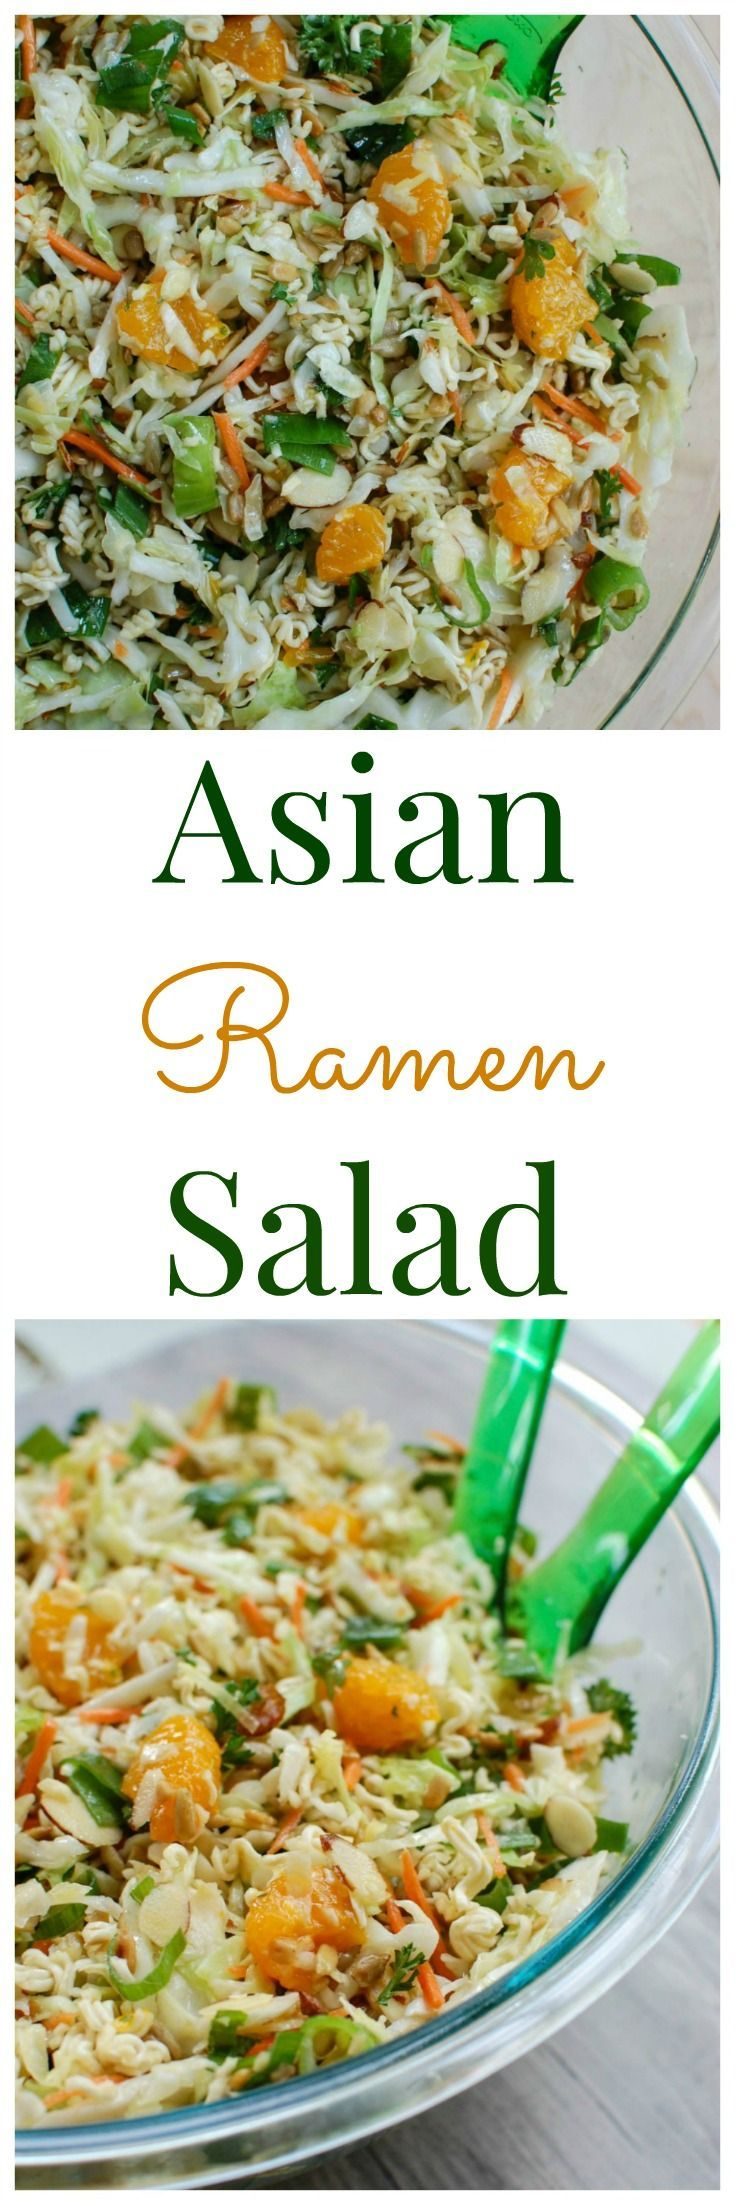 Asian Ramen Noodle Salad is sure to be a big hit at your next BBQ or picnic. This salad has nice crunch for the ramen noodles that are mixed with the coleslaw, green onions, almonds, sunflower seeds, mandarin oranges, fresh parsley and topped with a light dressing. // A Cedar Spoon